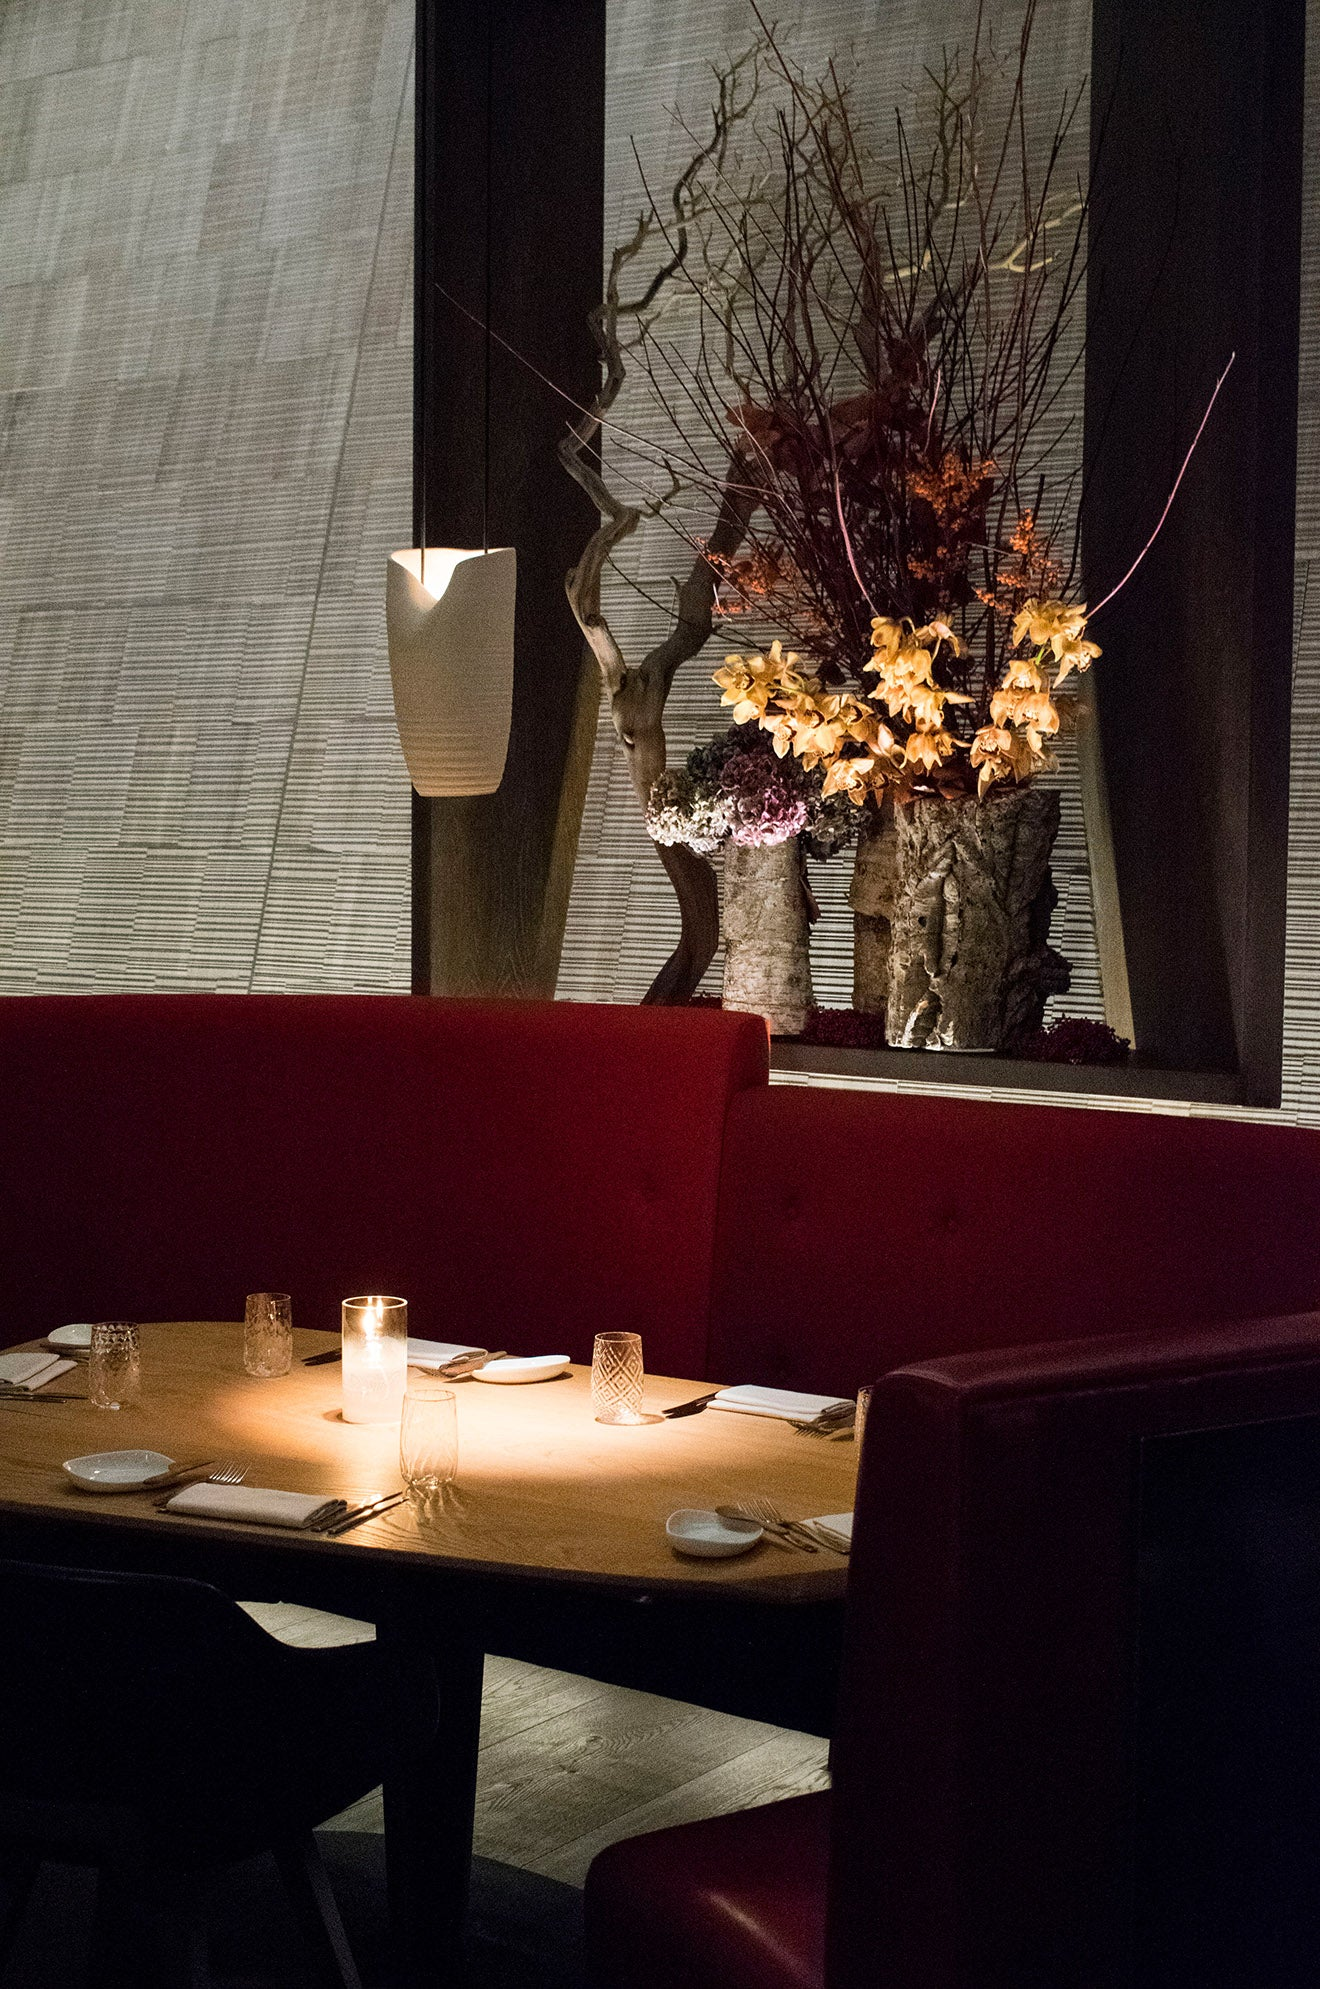 Eneko Restaurant London One Aldwych with red booth seating